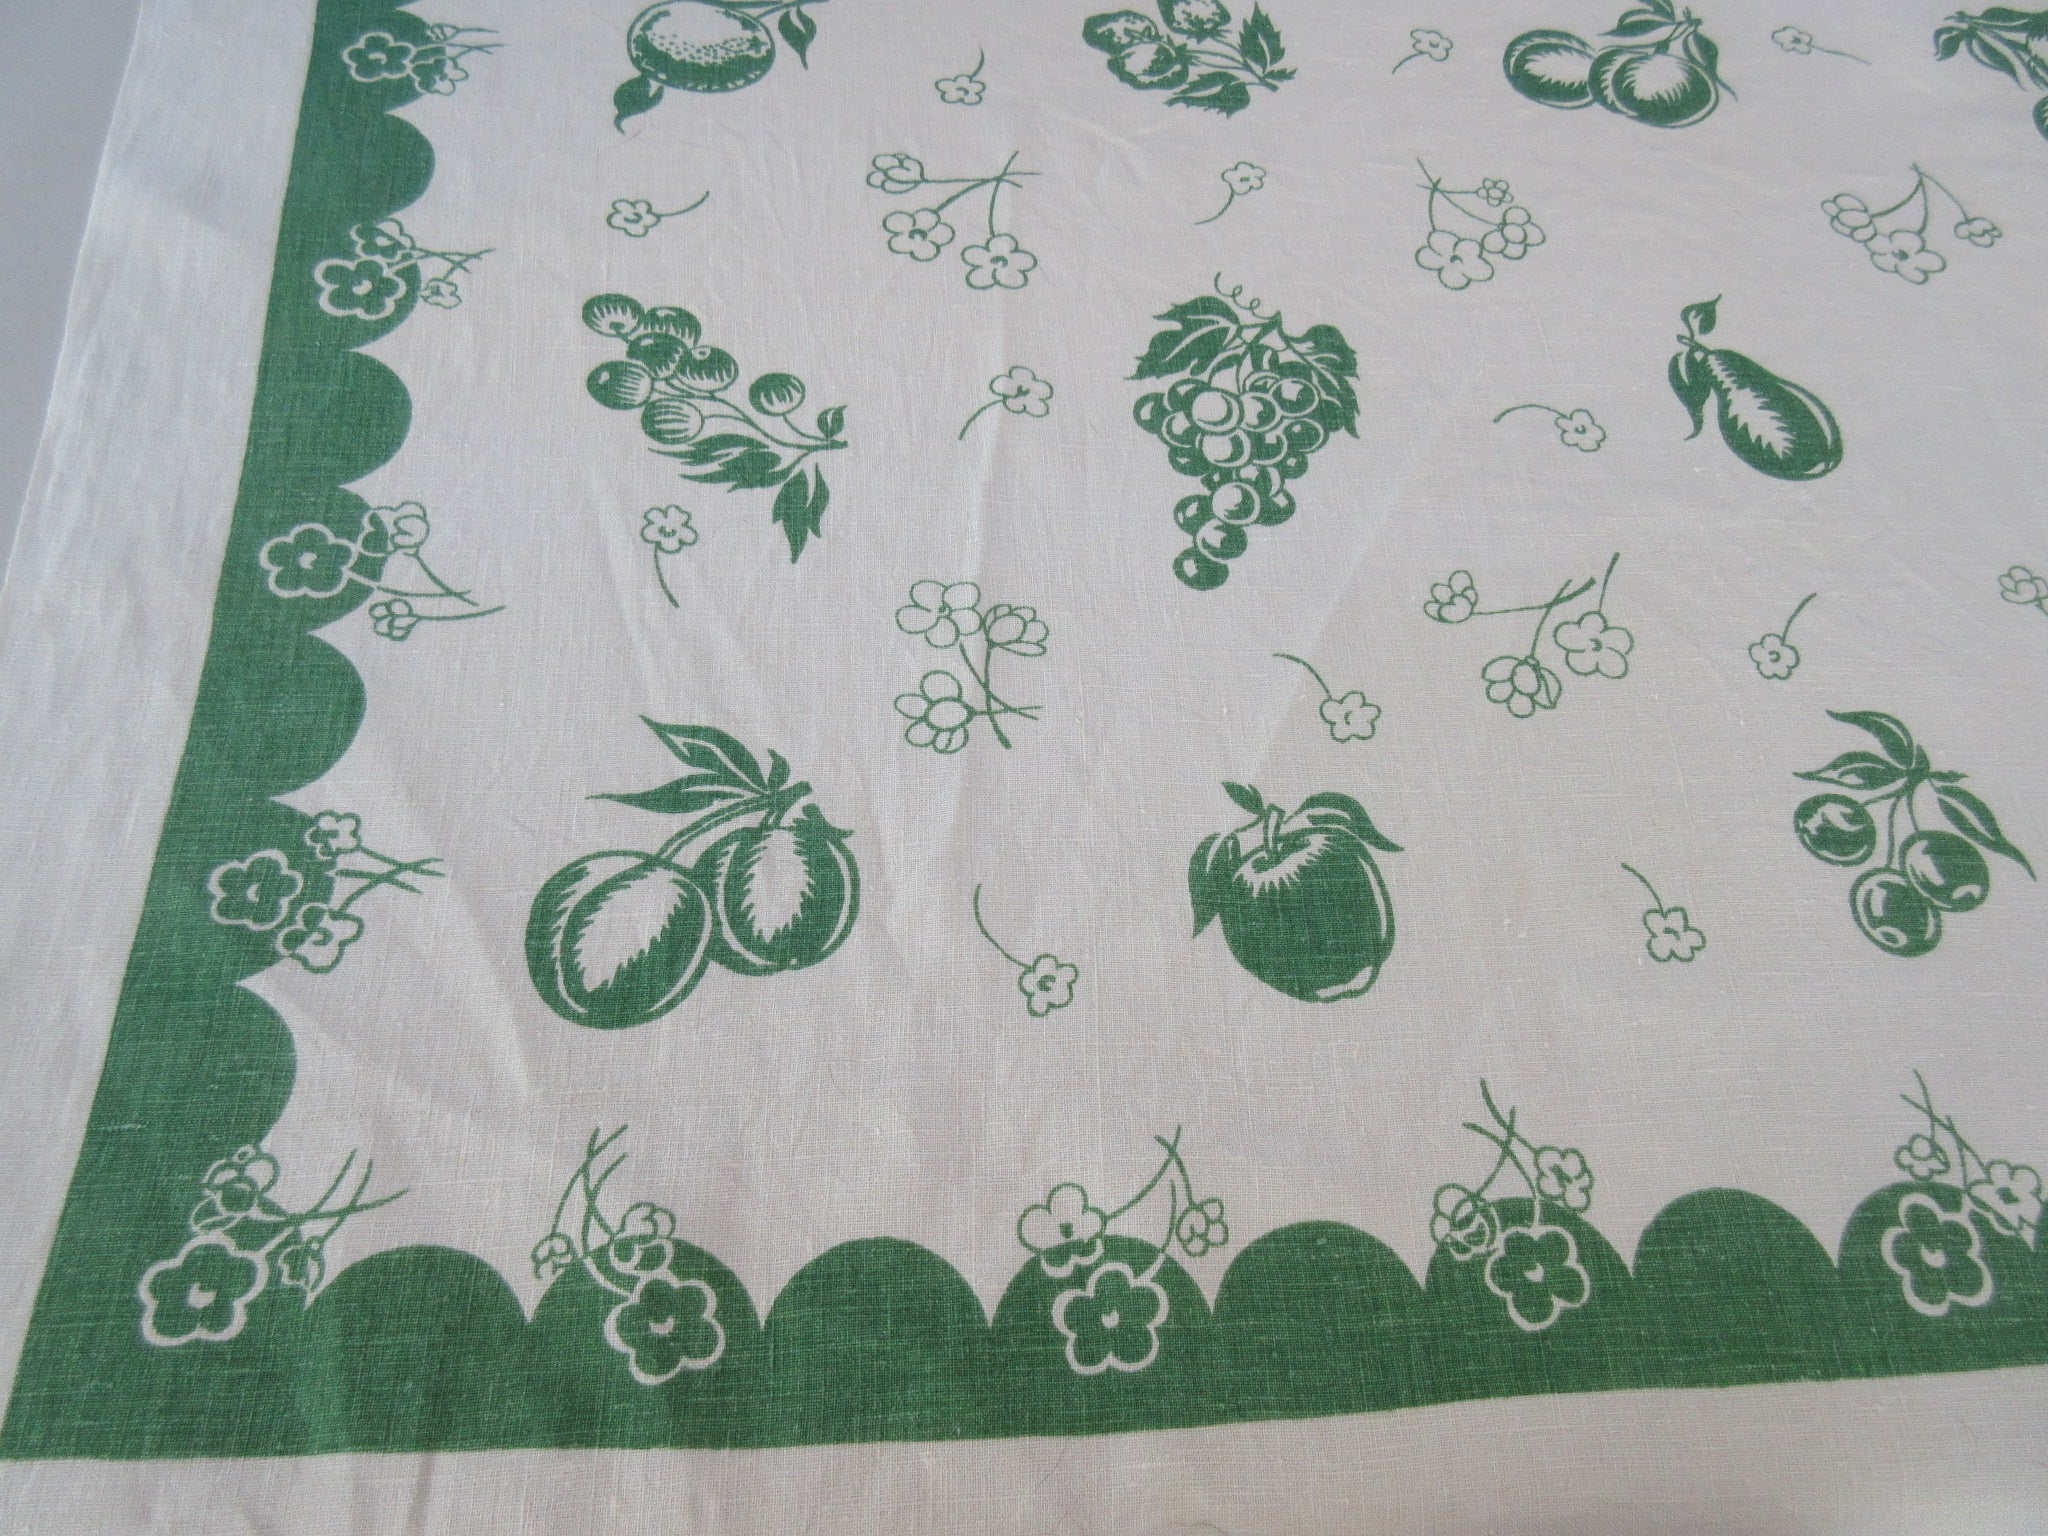 Single Color Early Linen Fruit Vintage Printed Tablecloth (50 X 50)